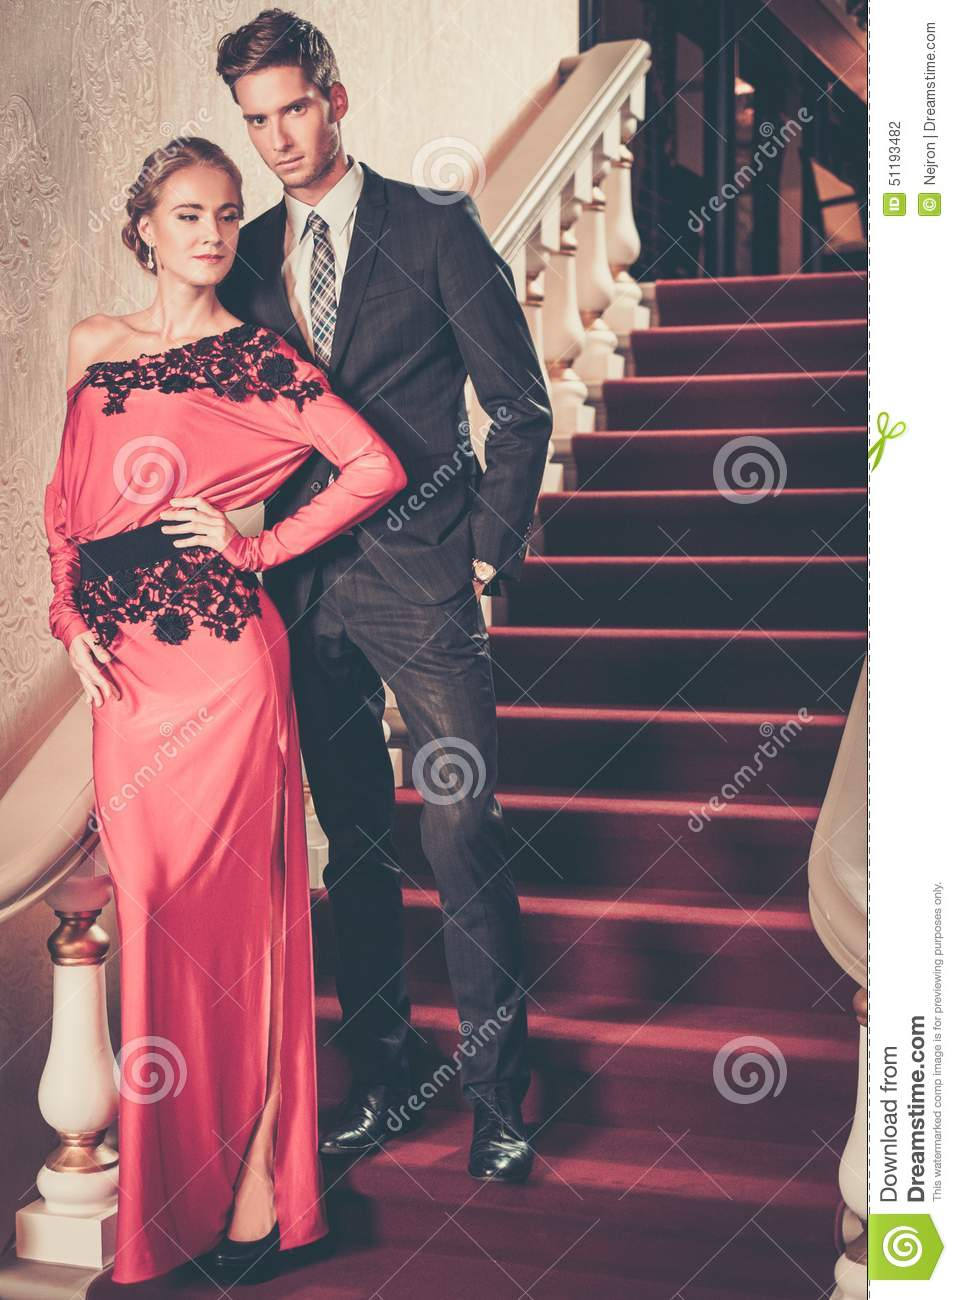 88c273e37843 Well-dressed Couple In Luxury Interior Stock Photo - Image of club ...